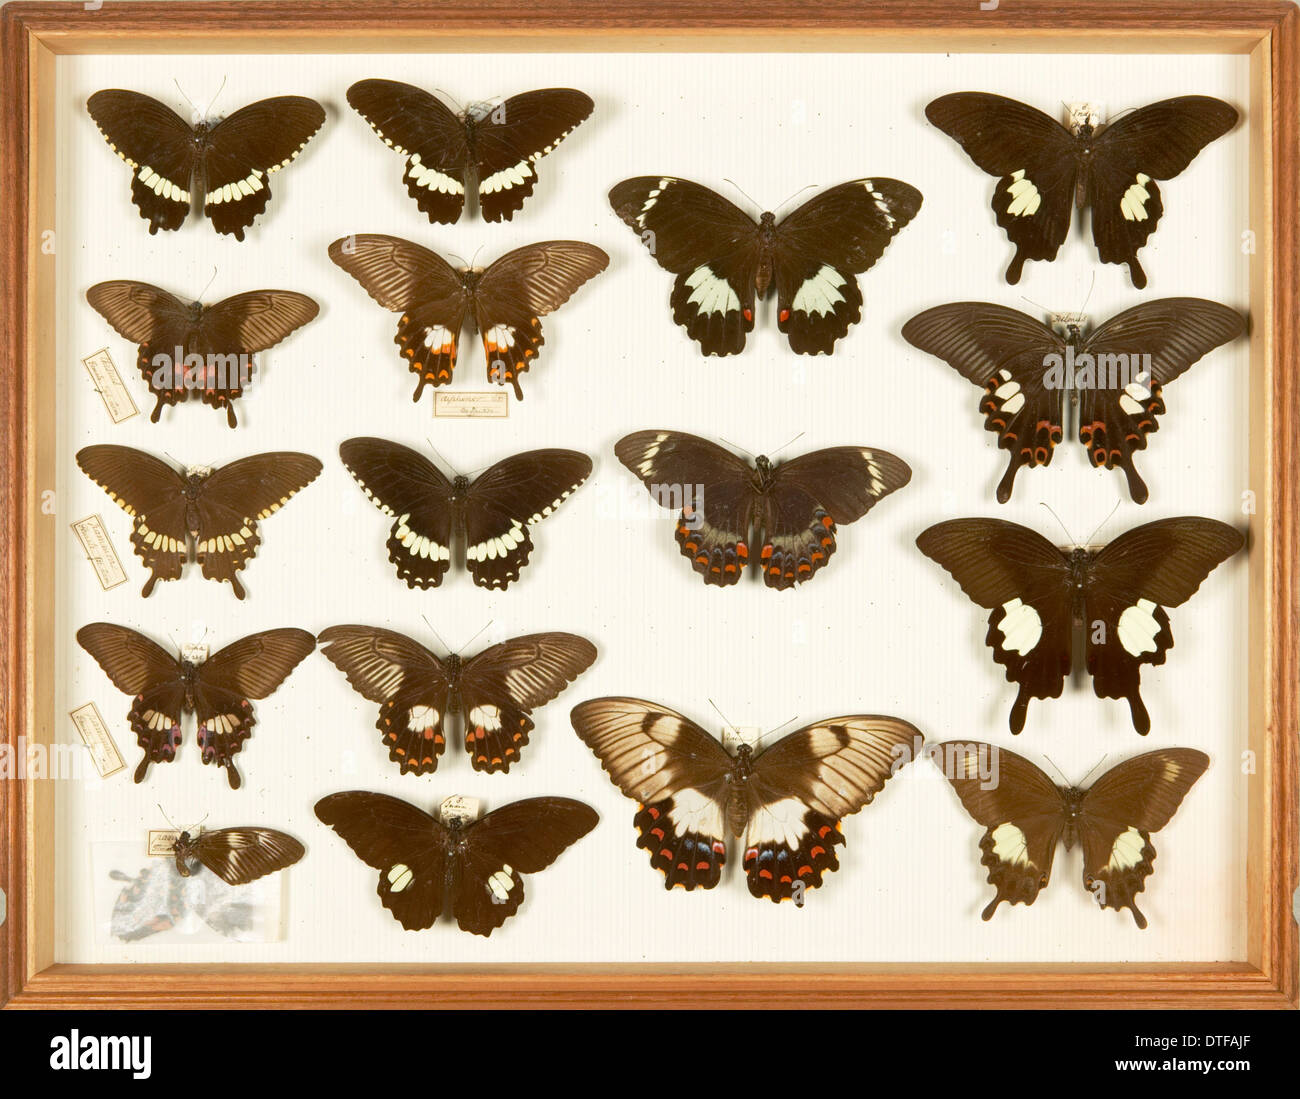 Entomological Specimens from the Wallace Collection - Stock Image